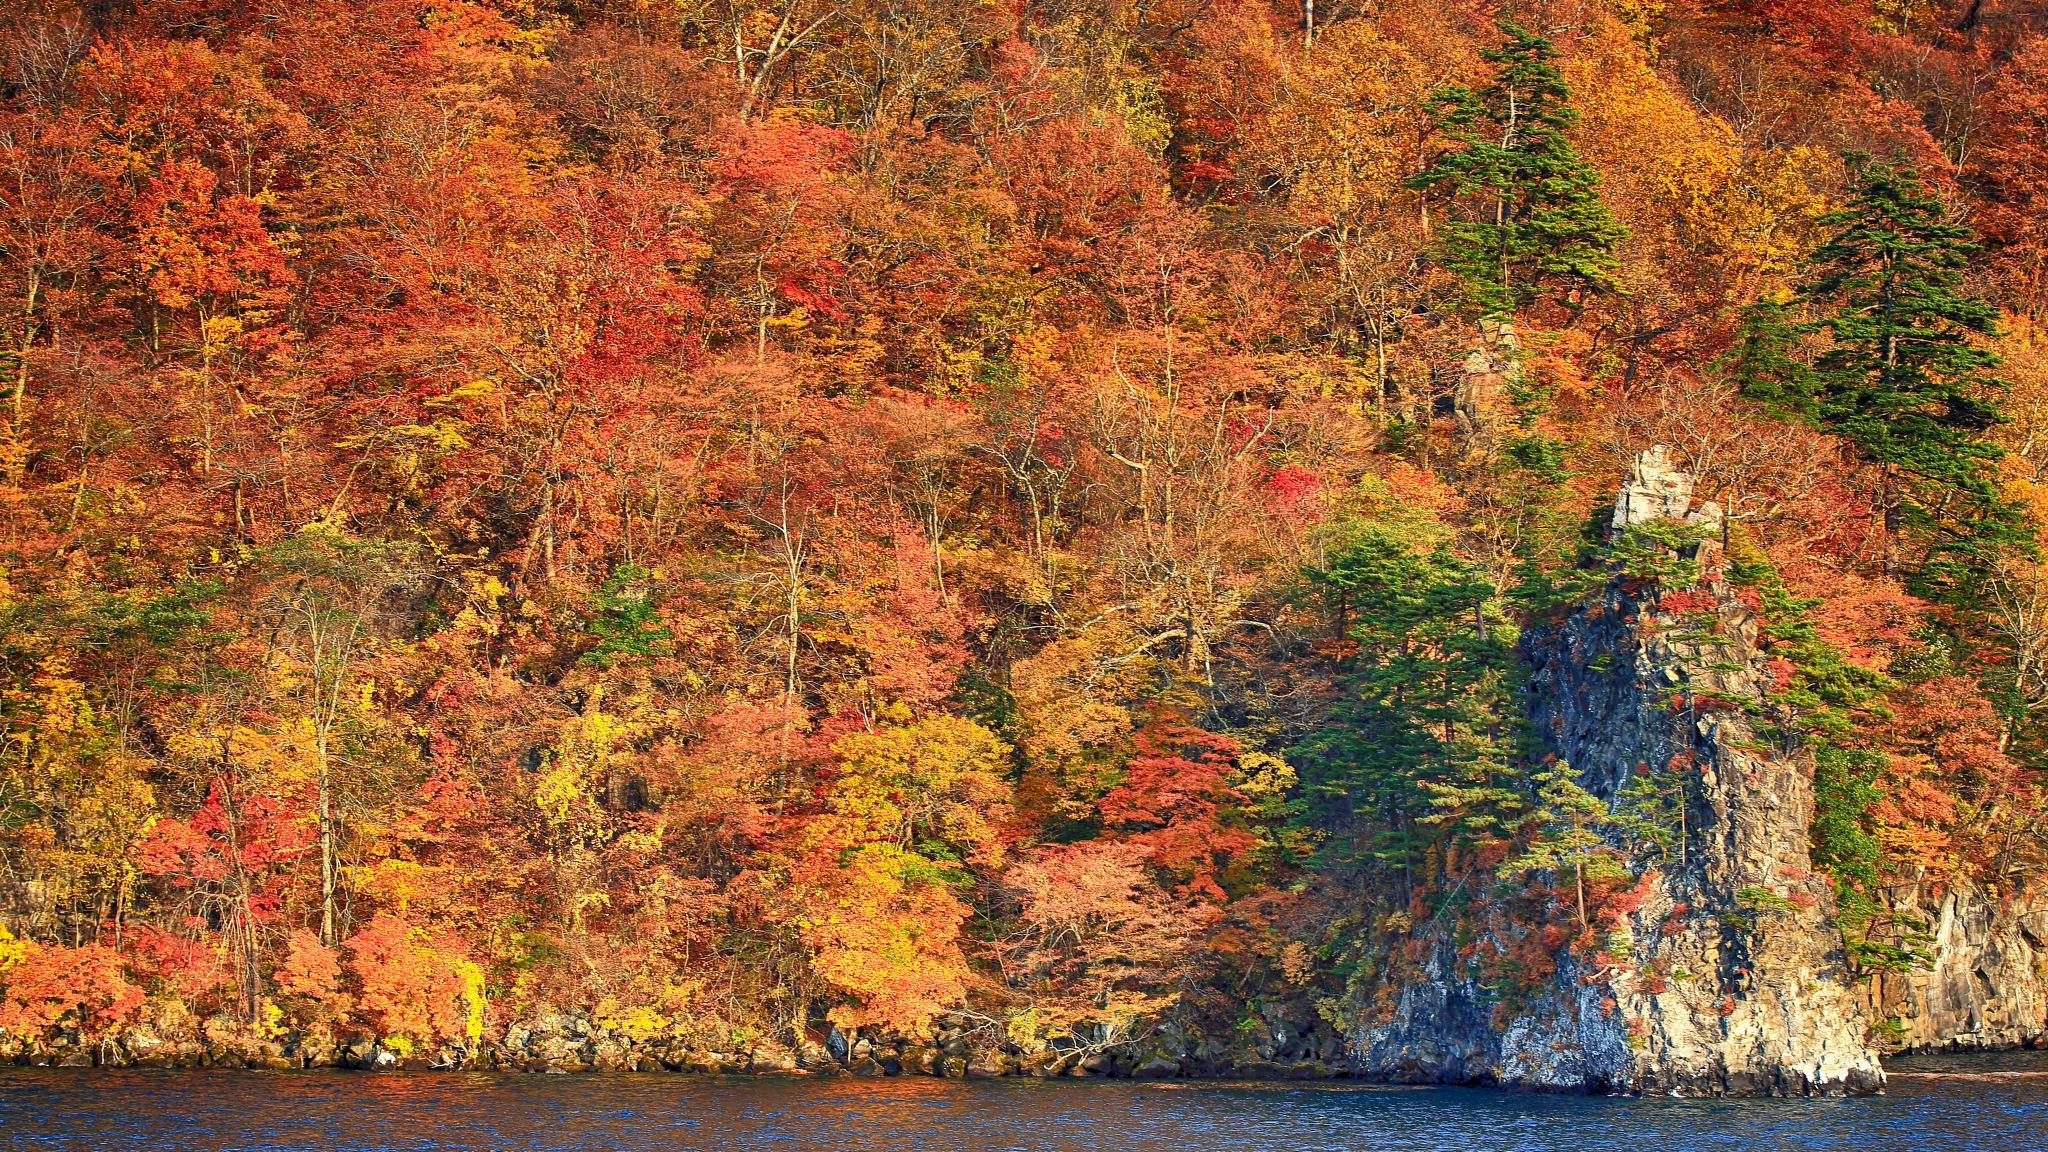 Colorful in autumn by leecj0129